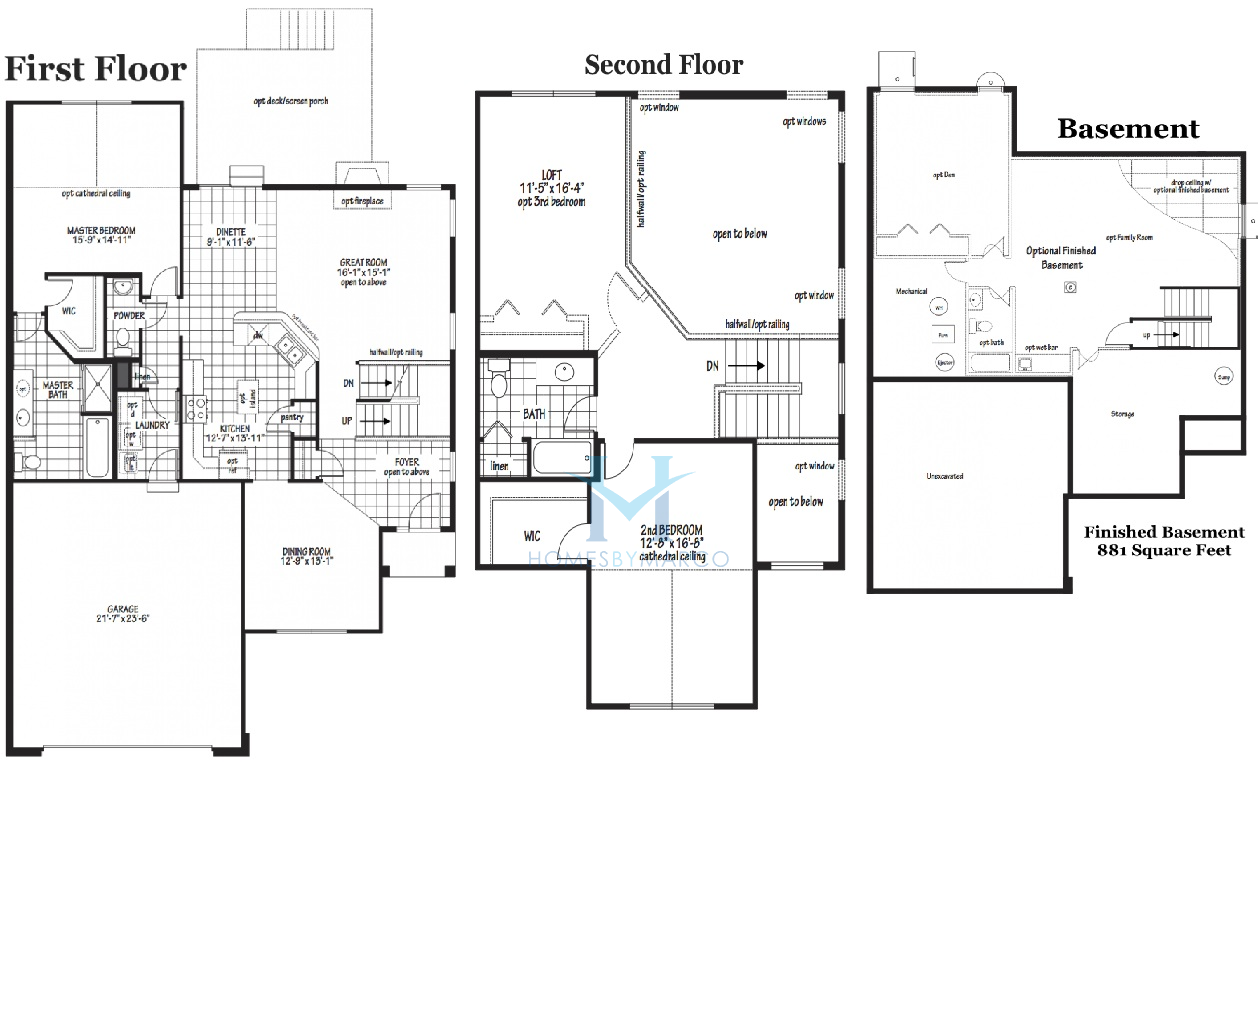 Brighton homes floor plans katy 28 images amazing for Brighton homes home designs